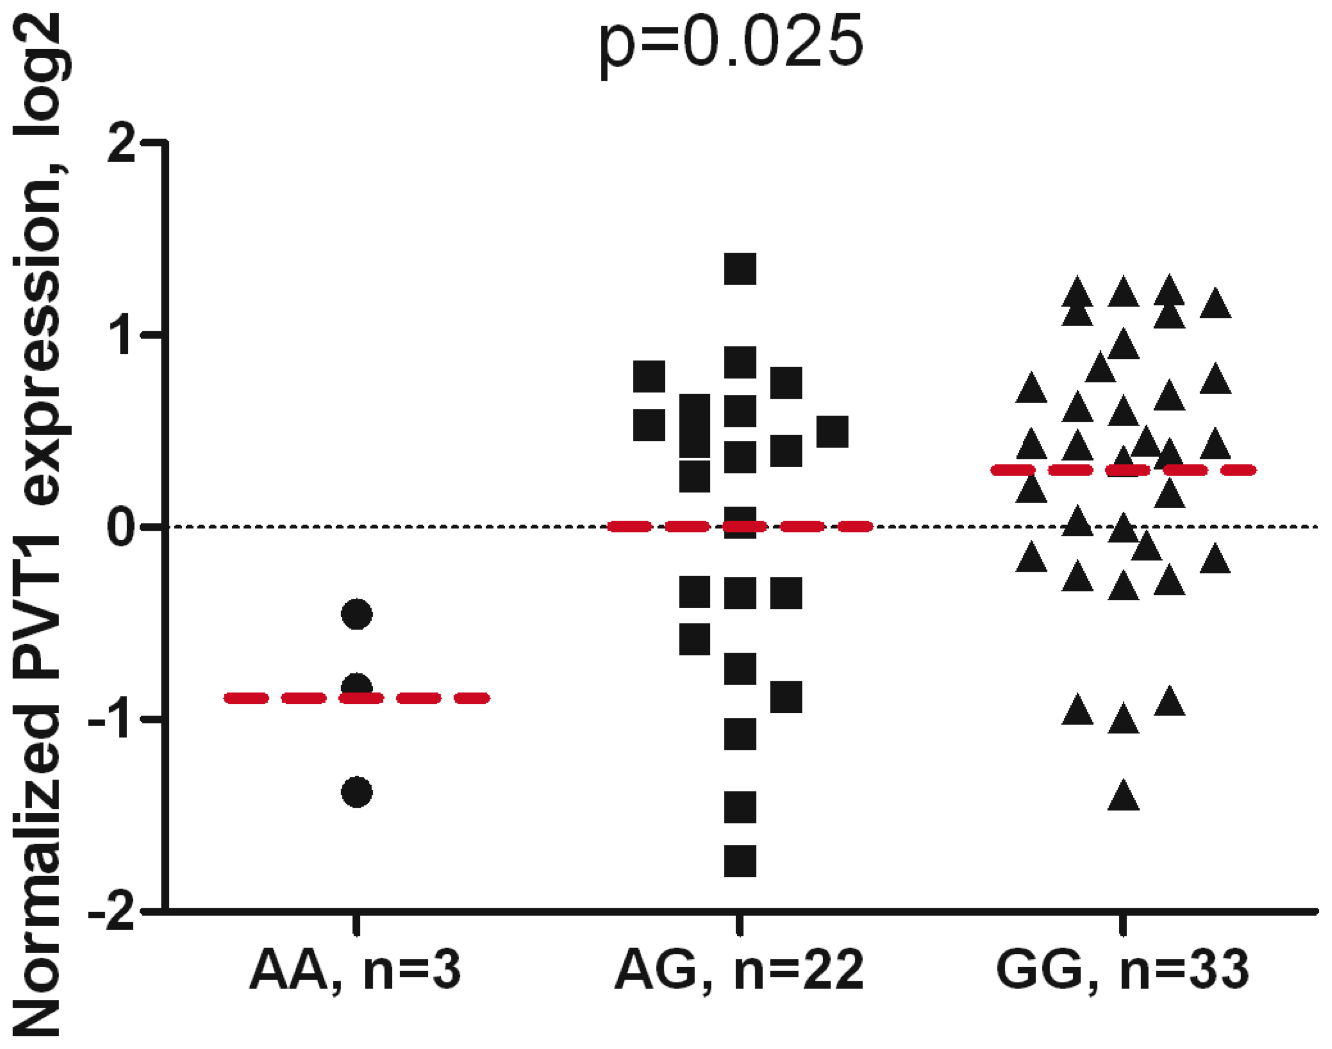 Association of <i>PVT1</i> gene expression with rs378854 genotype in 59 normal prostate samples.